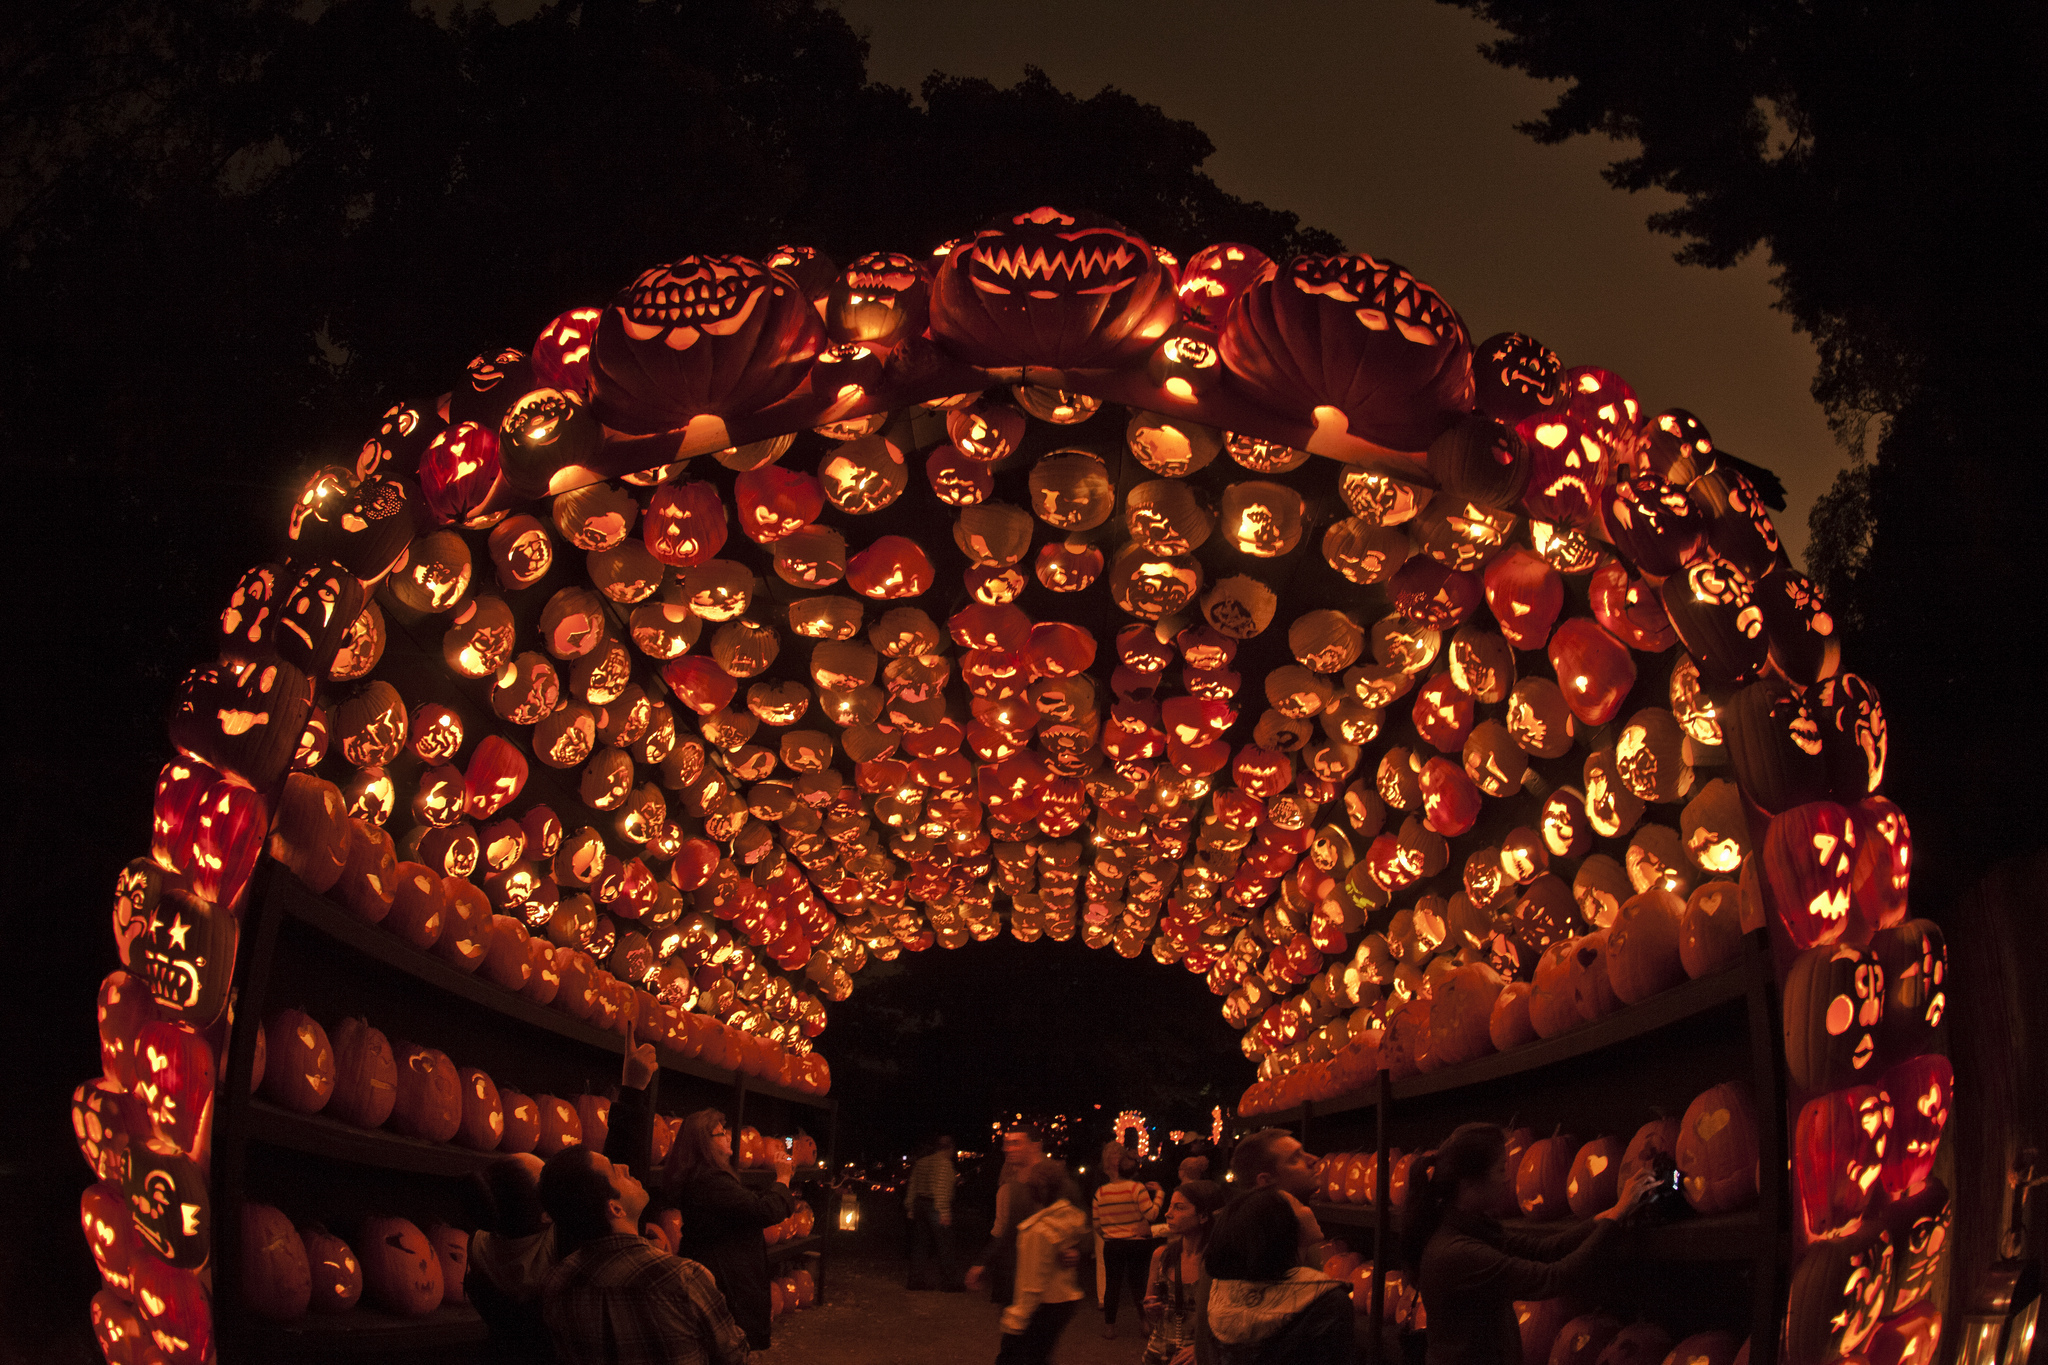 Tickets for the gourd-eous Great Jack O'Lantern Blaze go on sale this Tuesday